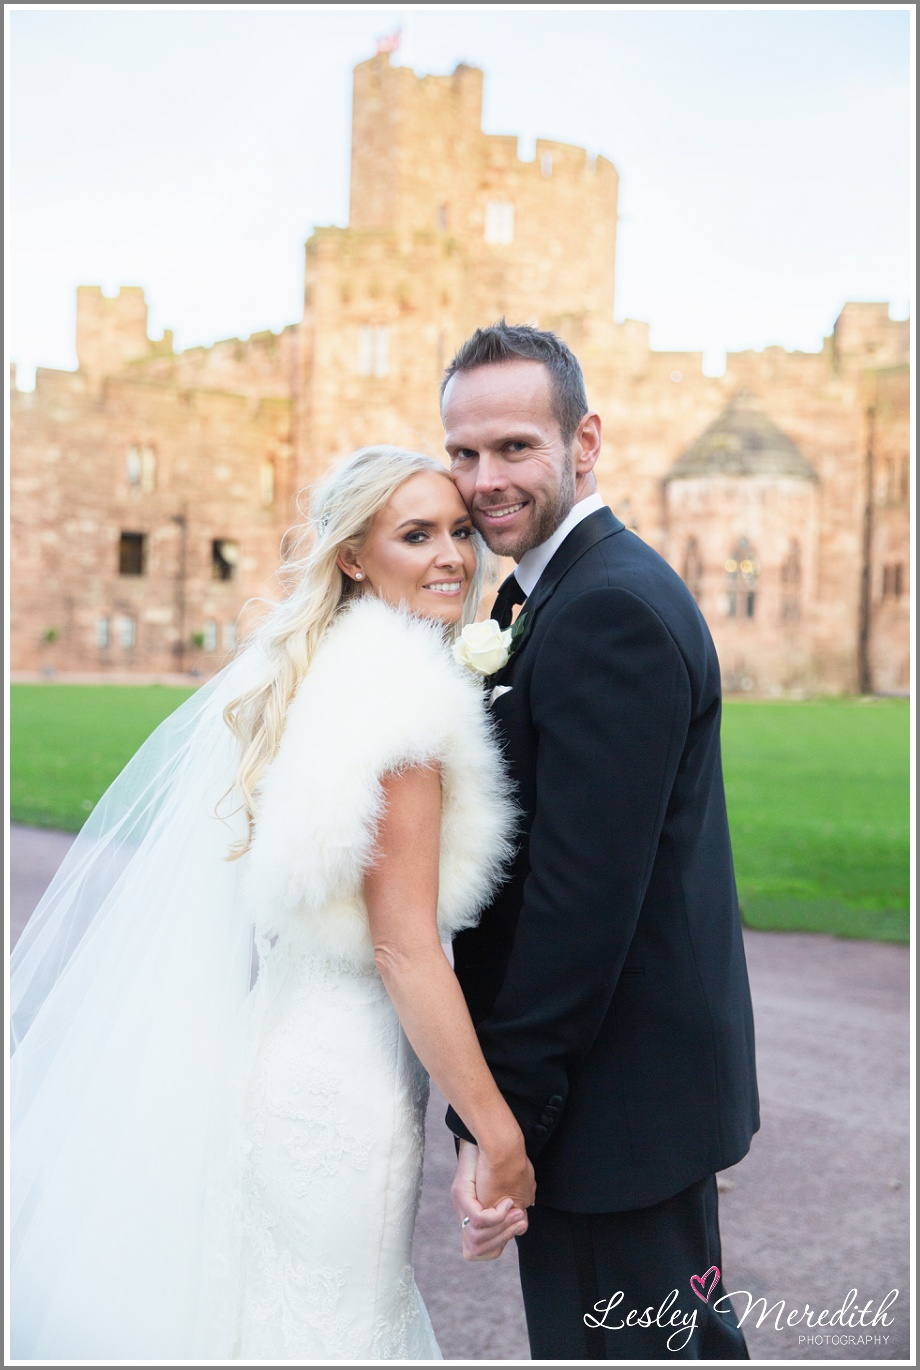 Julie and Marcus with Peckforton Castle in the background